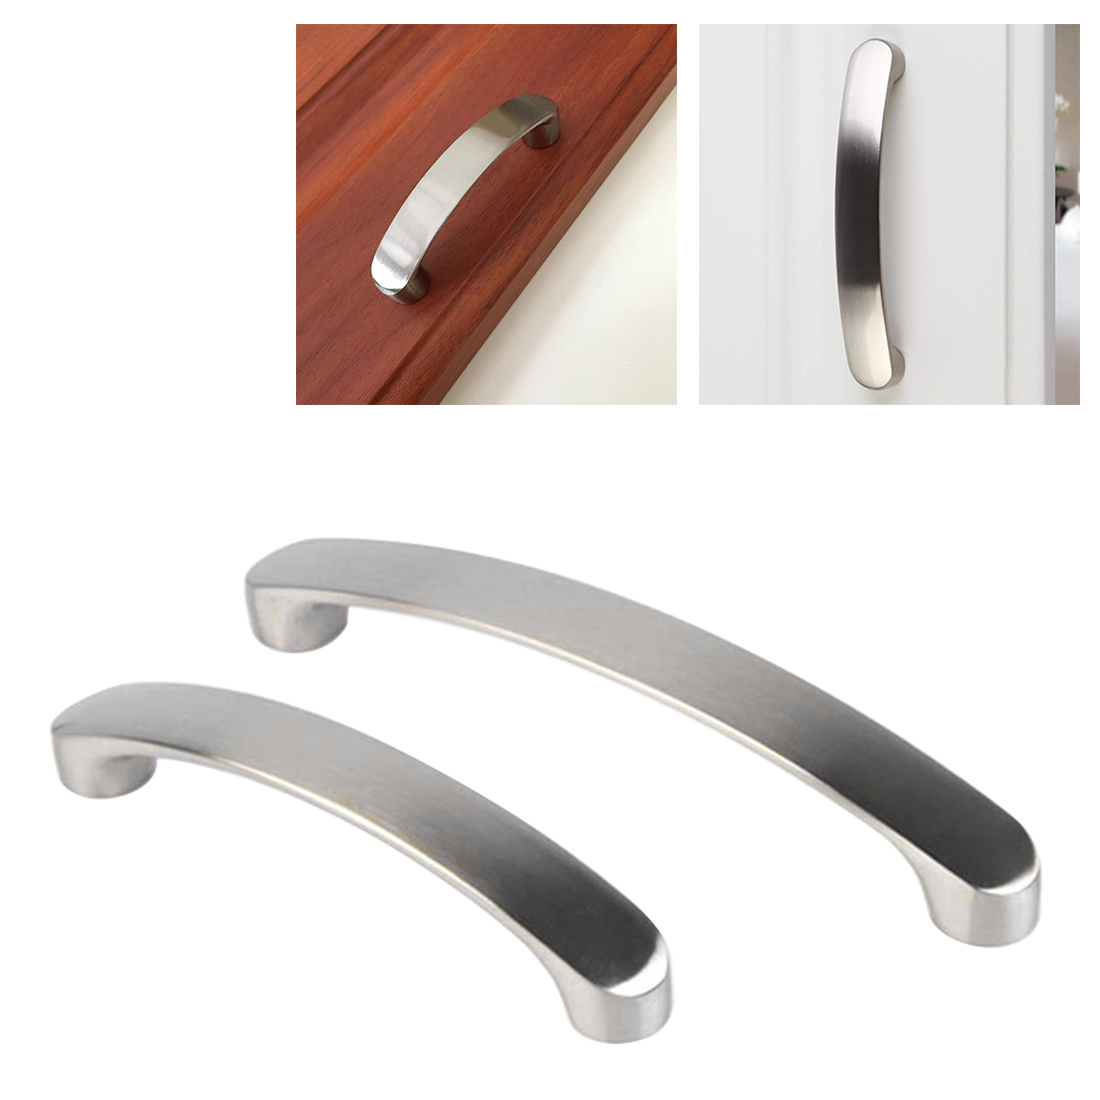 Kitchen Access Modern Minimalist Cabinet / Wardrobe / Closet Furniture Door Handle Brushed Nickel Cabinet